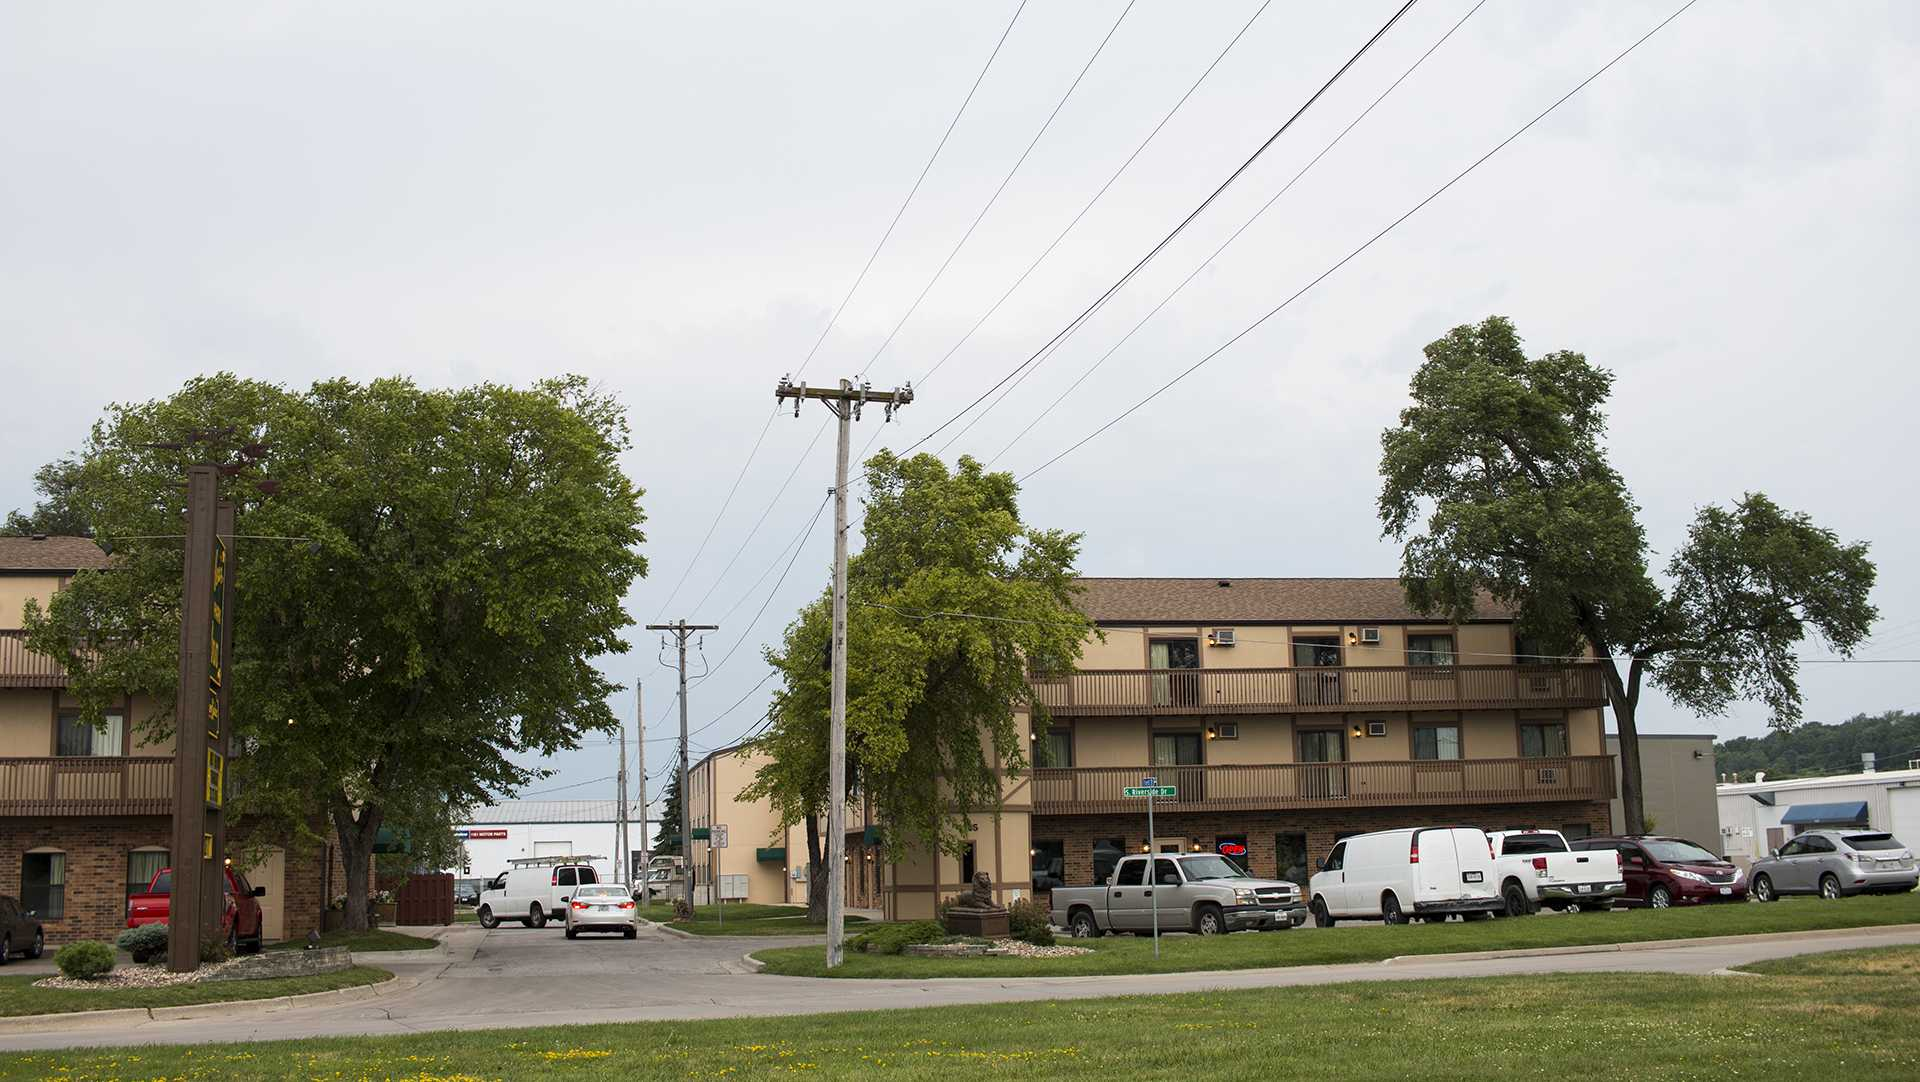 Alexis Park Inn is seen on Wednesday, June 28, 2017. owa City resident Ricky Ray Lillie was found in his Yellow Cab taxi after a call by another driver at 3:44 a.m. Wednesday. (Joseph Cress/The Daily Iowan)